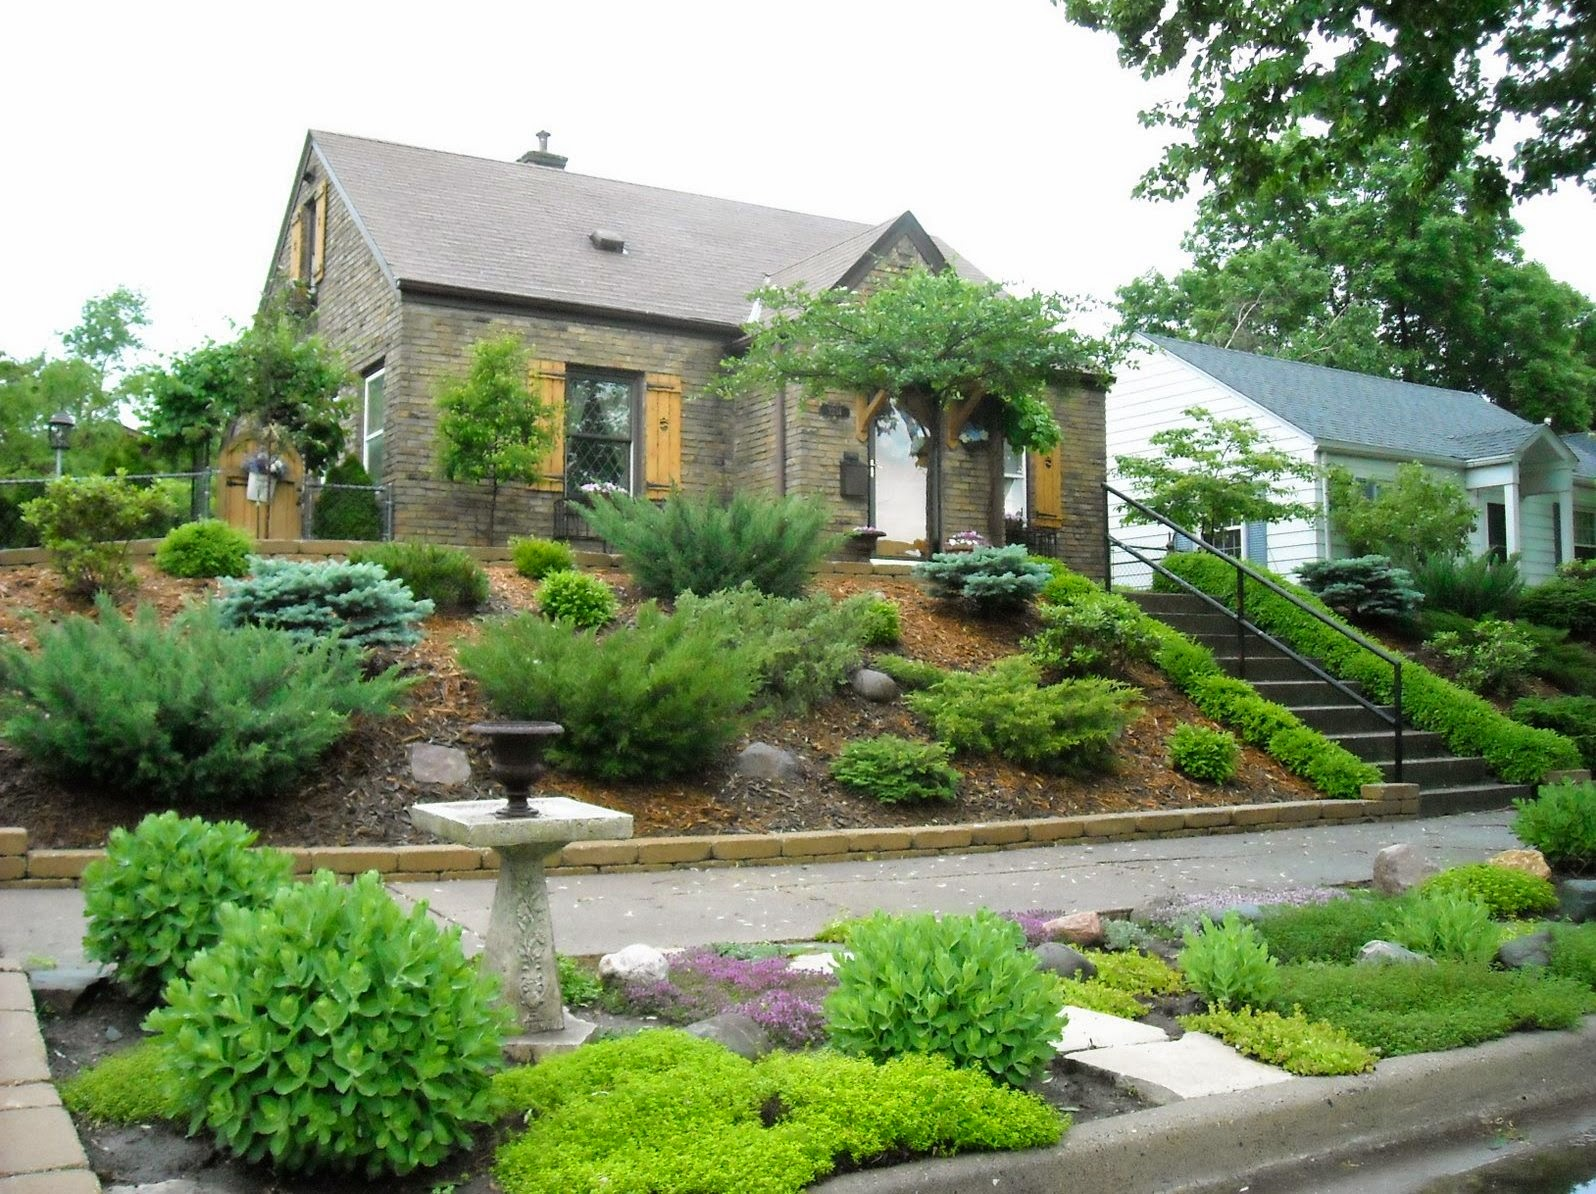 exterior-front-of-house-landscaping-landscaping-ideas-for-front-of-house-2